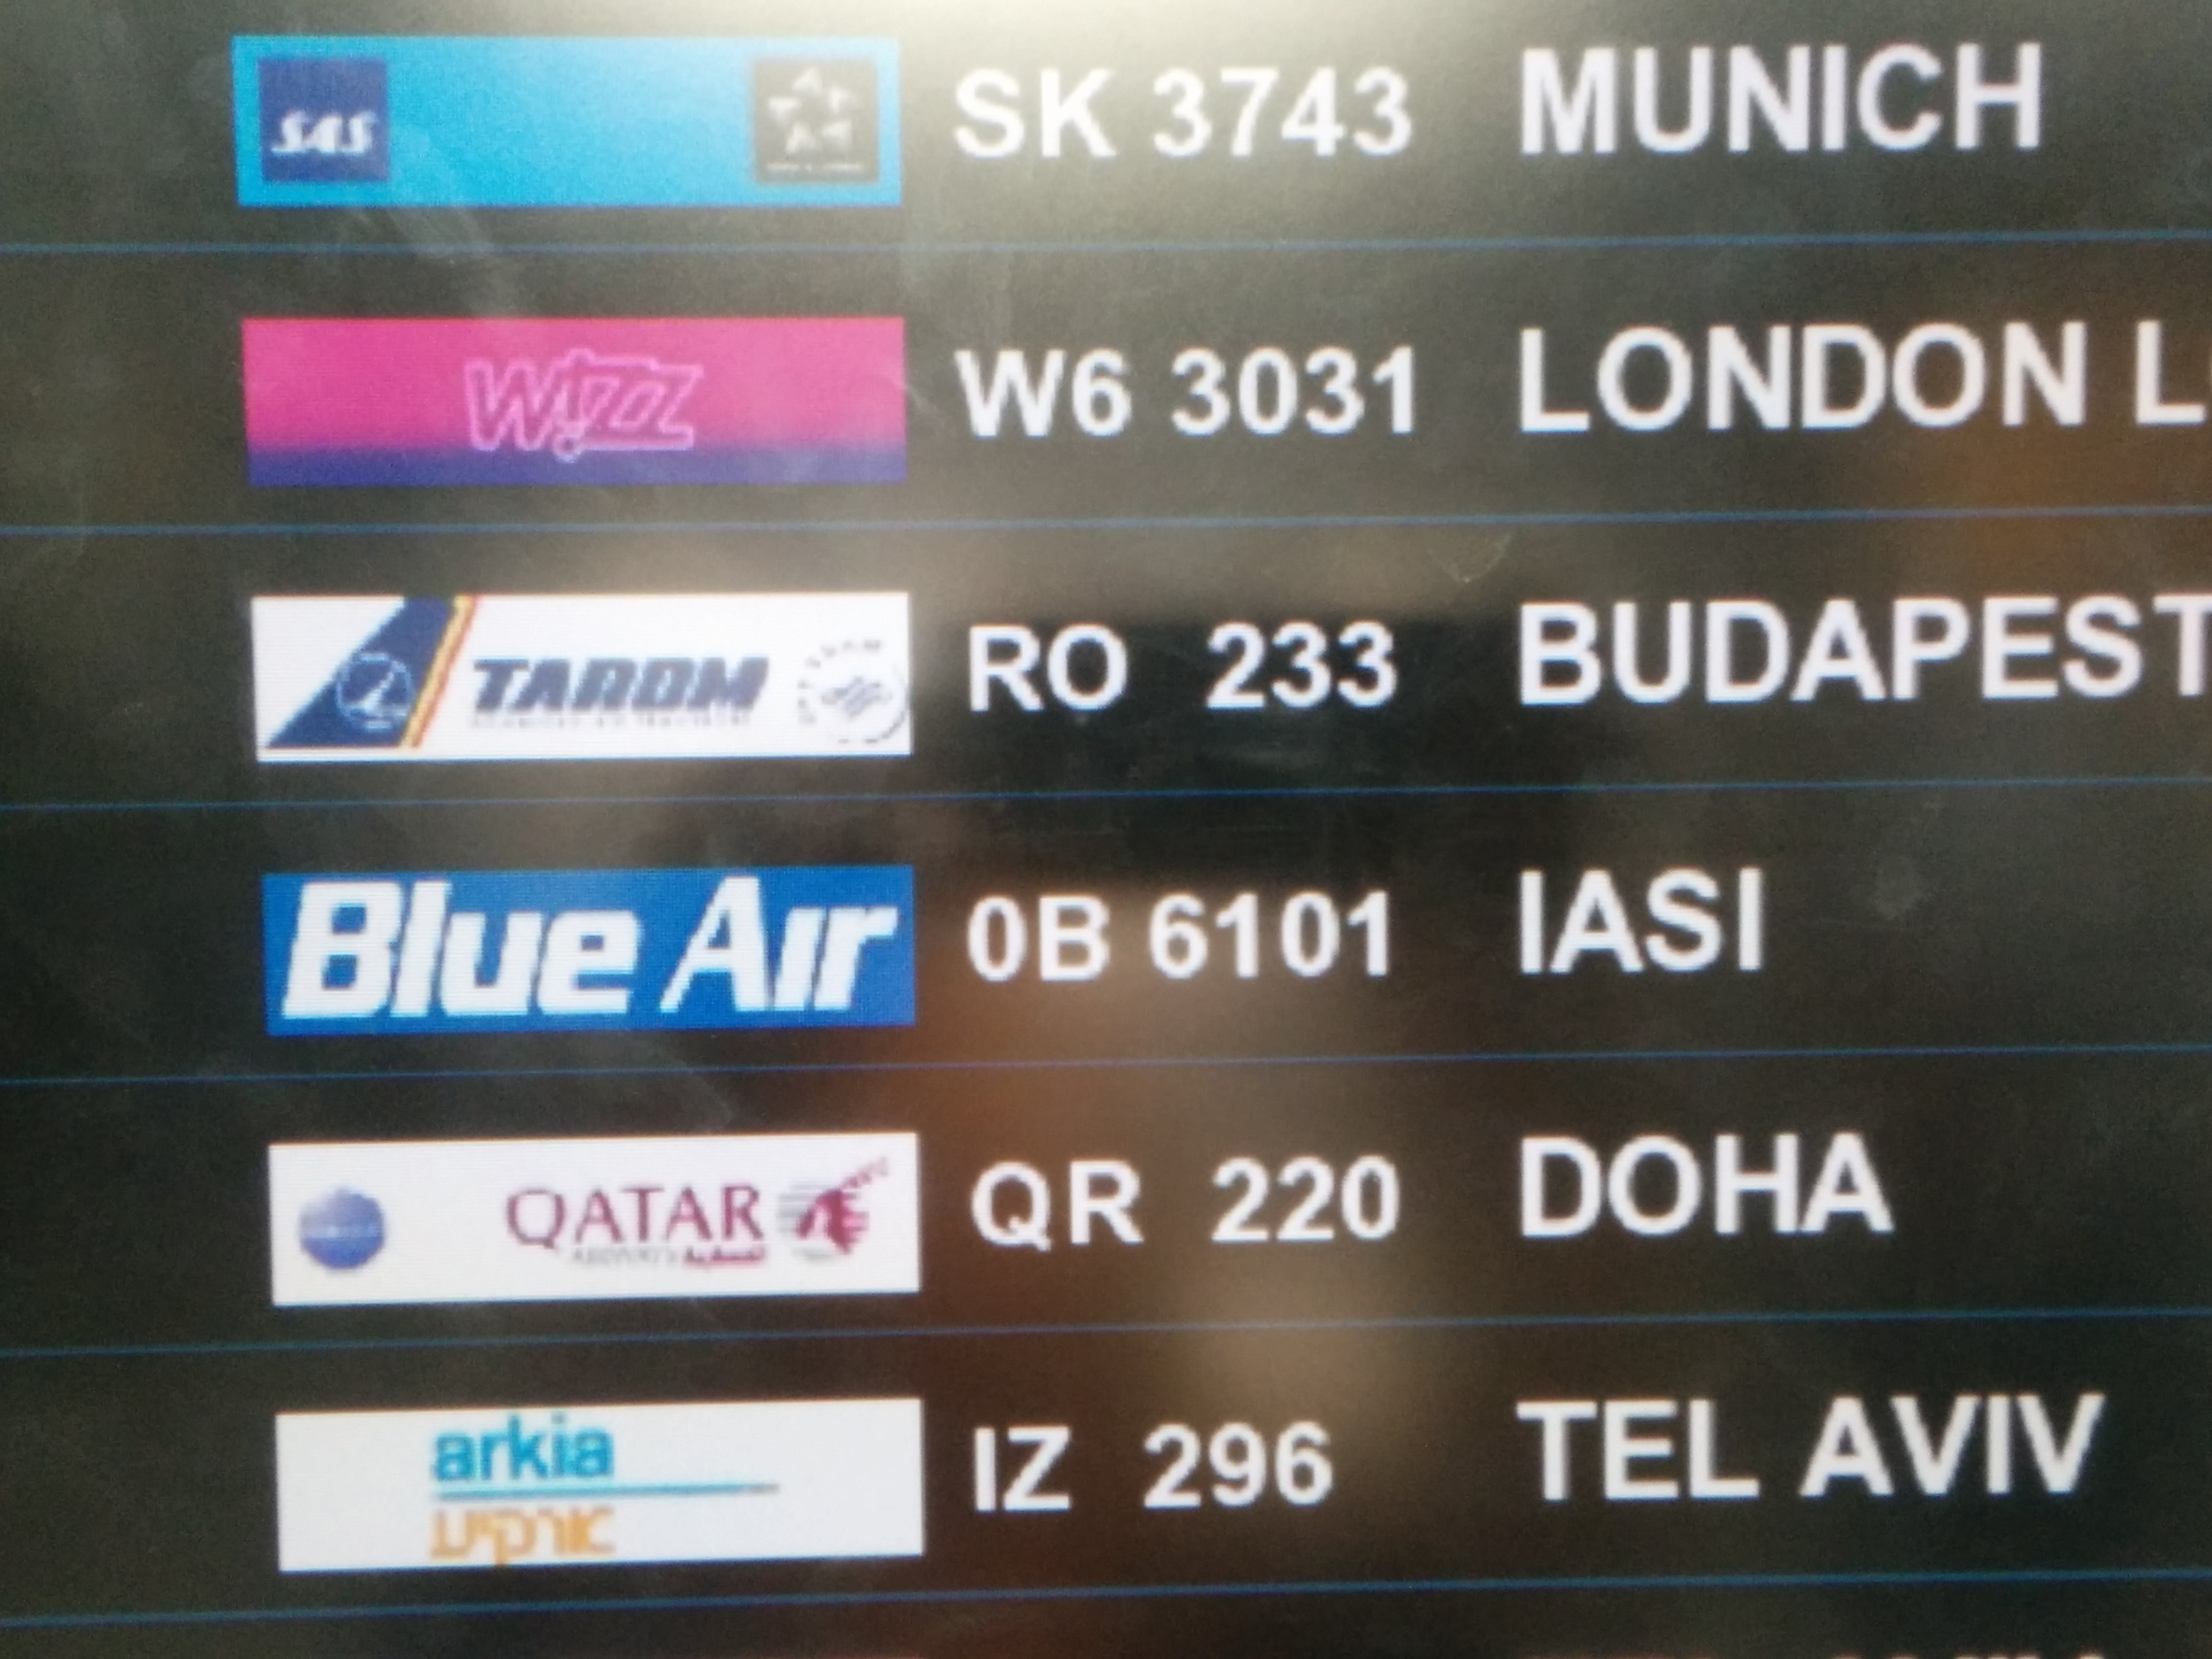 On our way to Iasi!